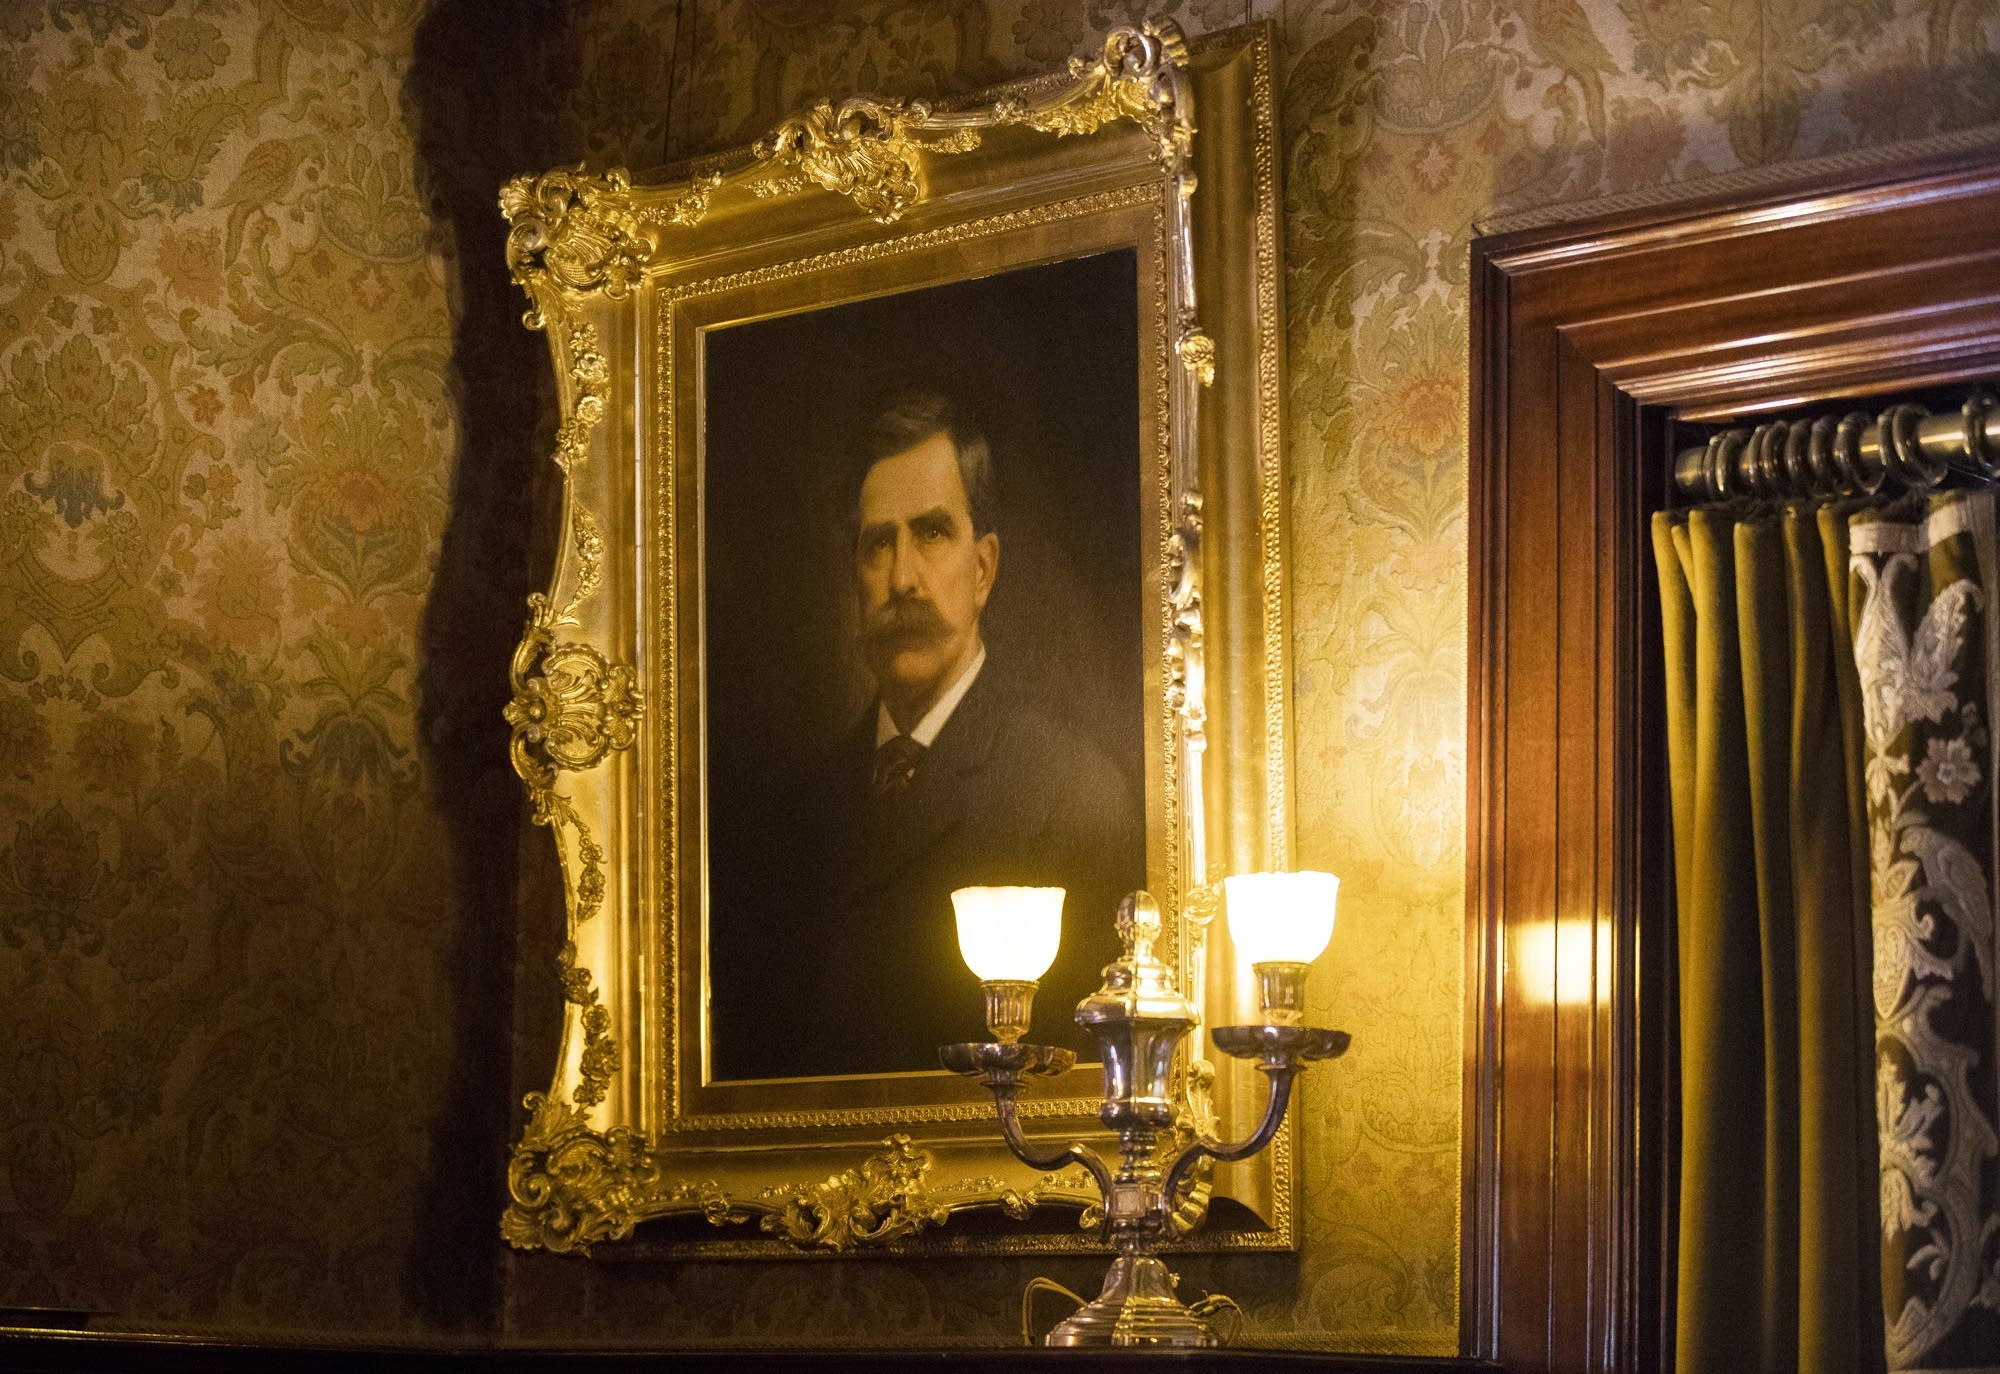 A portrait of Chester Congdon looks over visitors to the library.